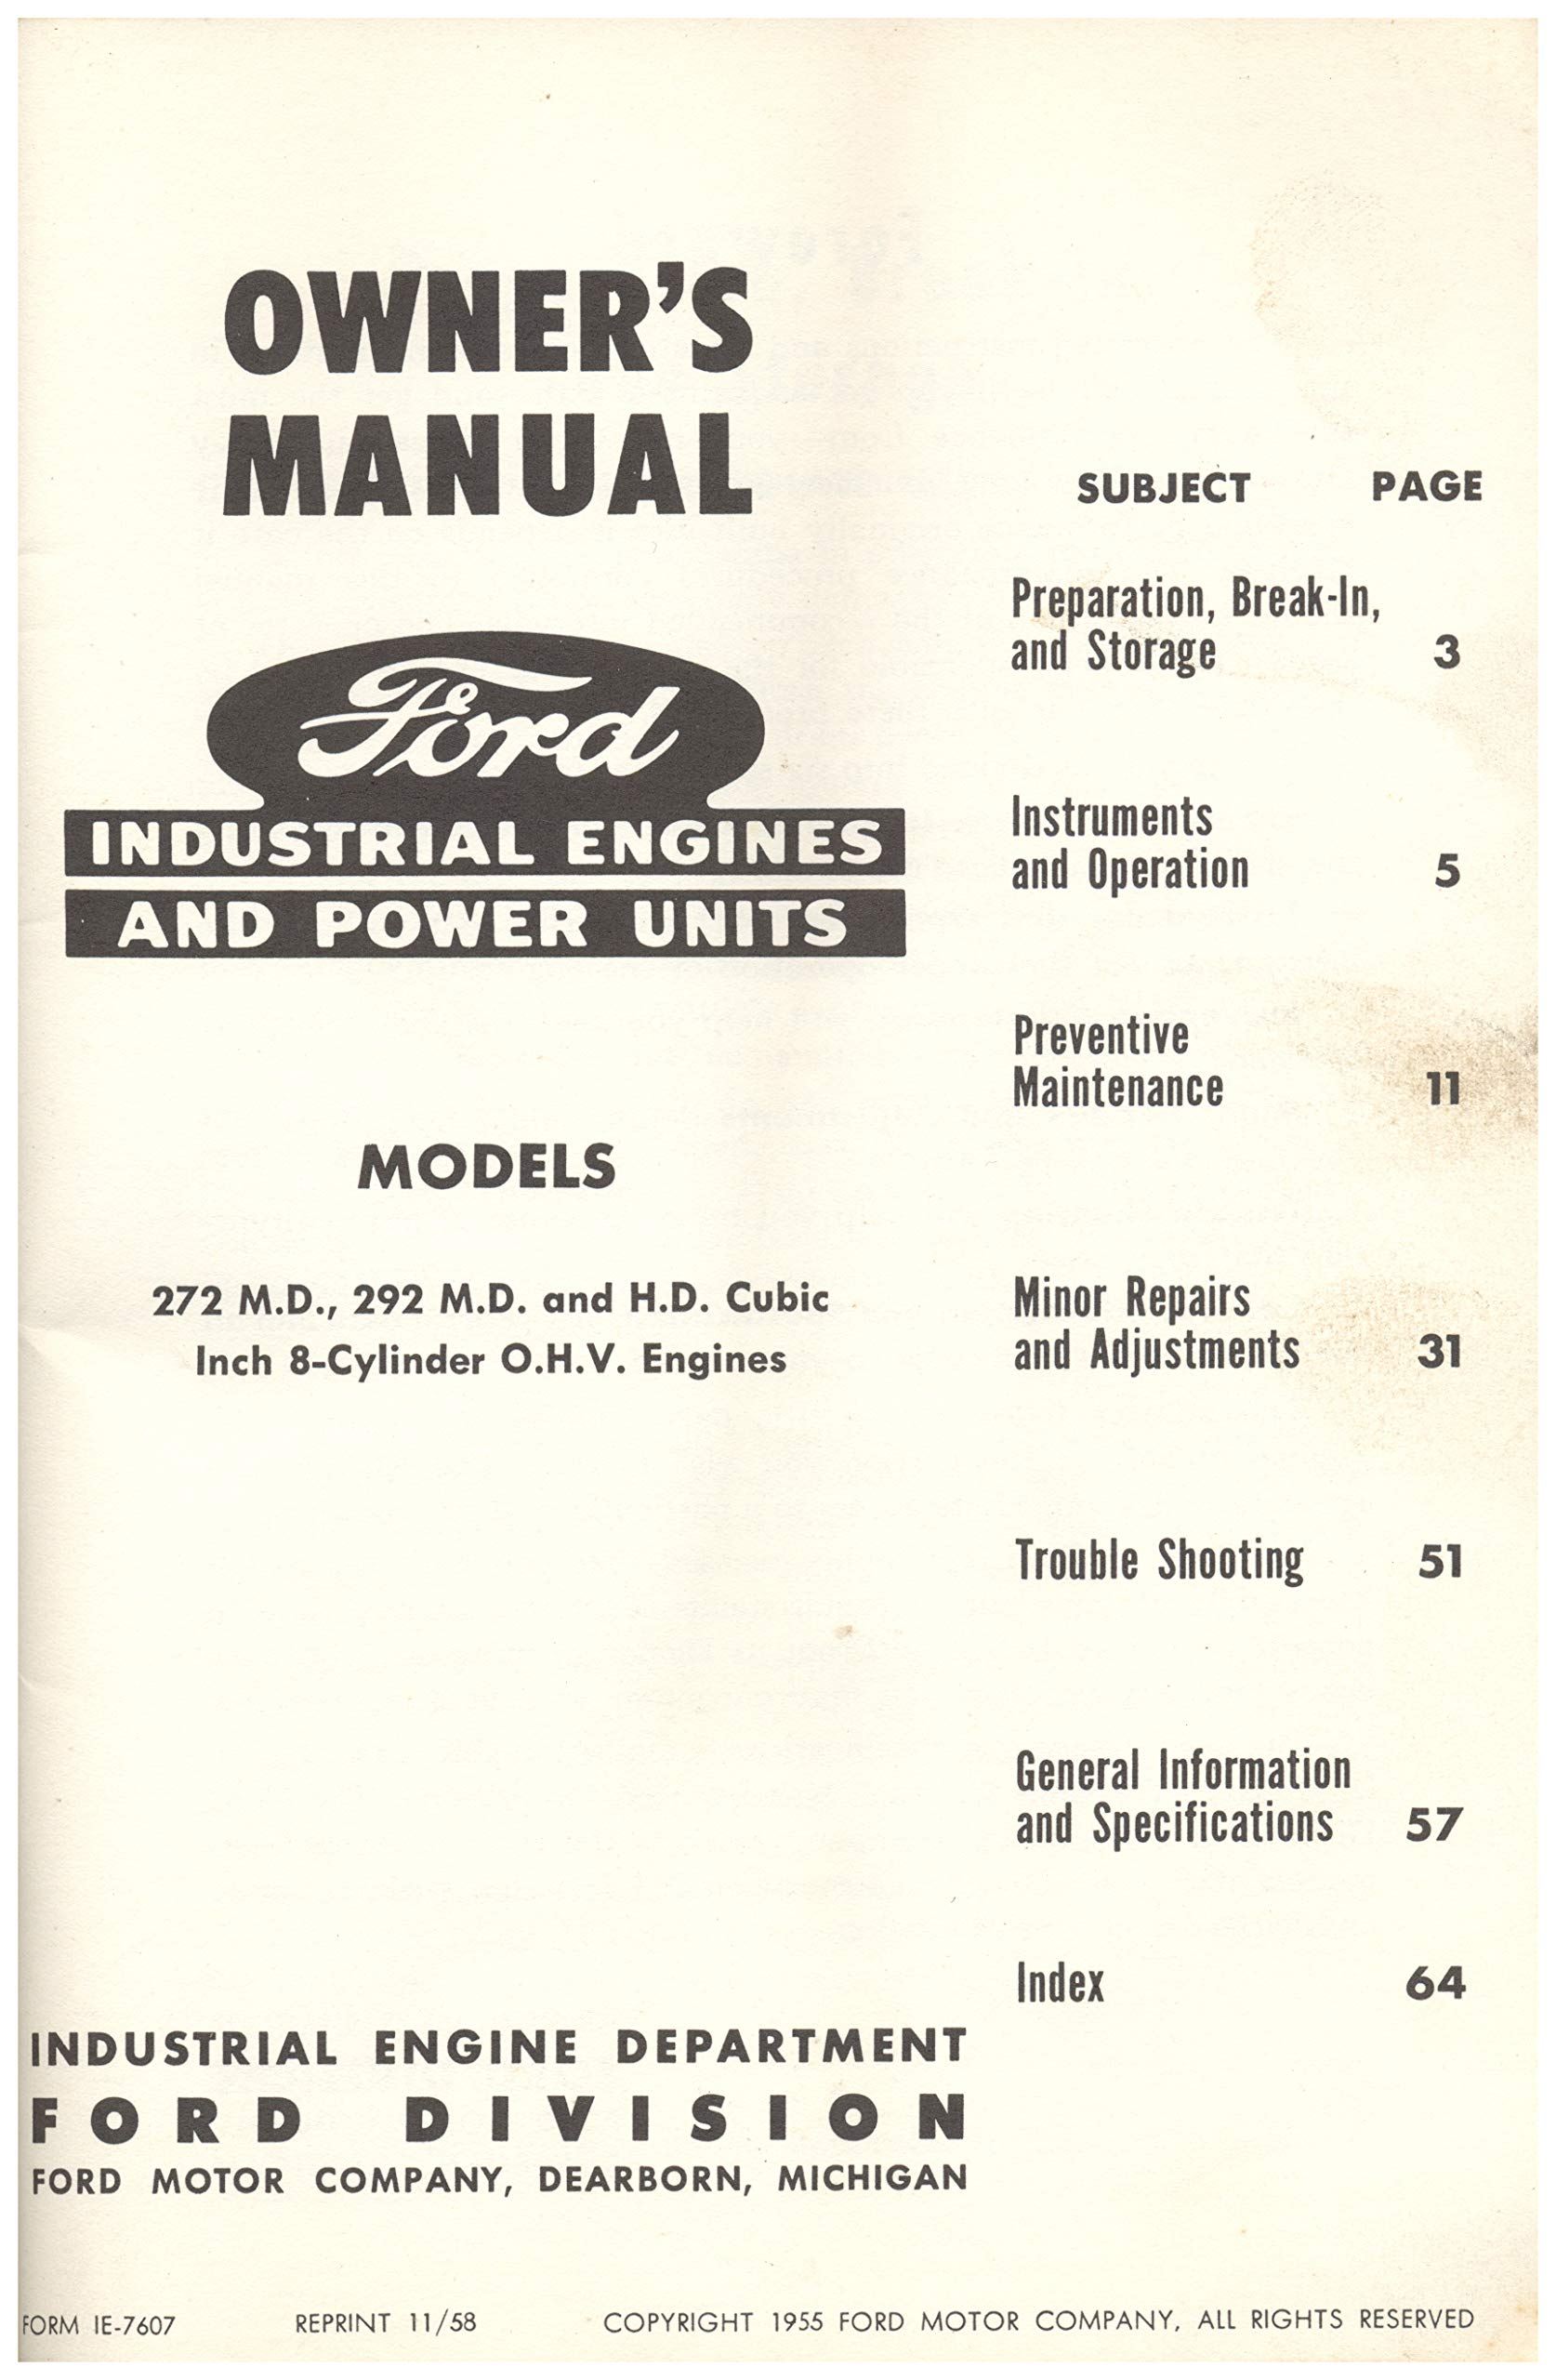 Ford Industrial Engines And Power Units: Industrial Engine